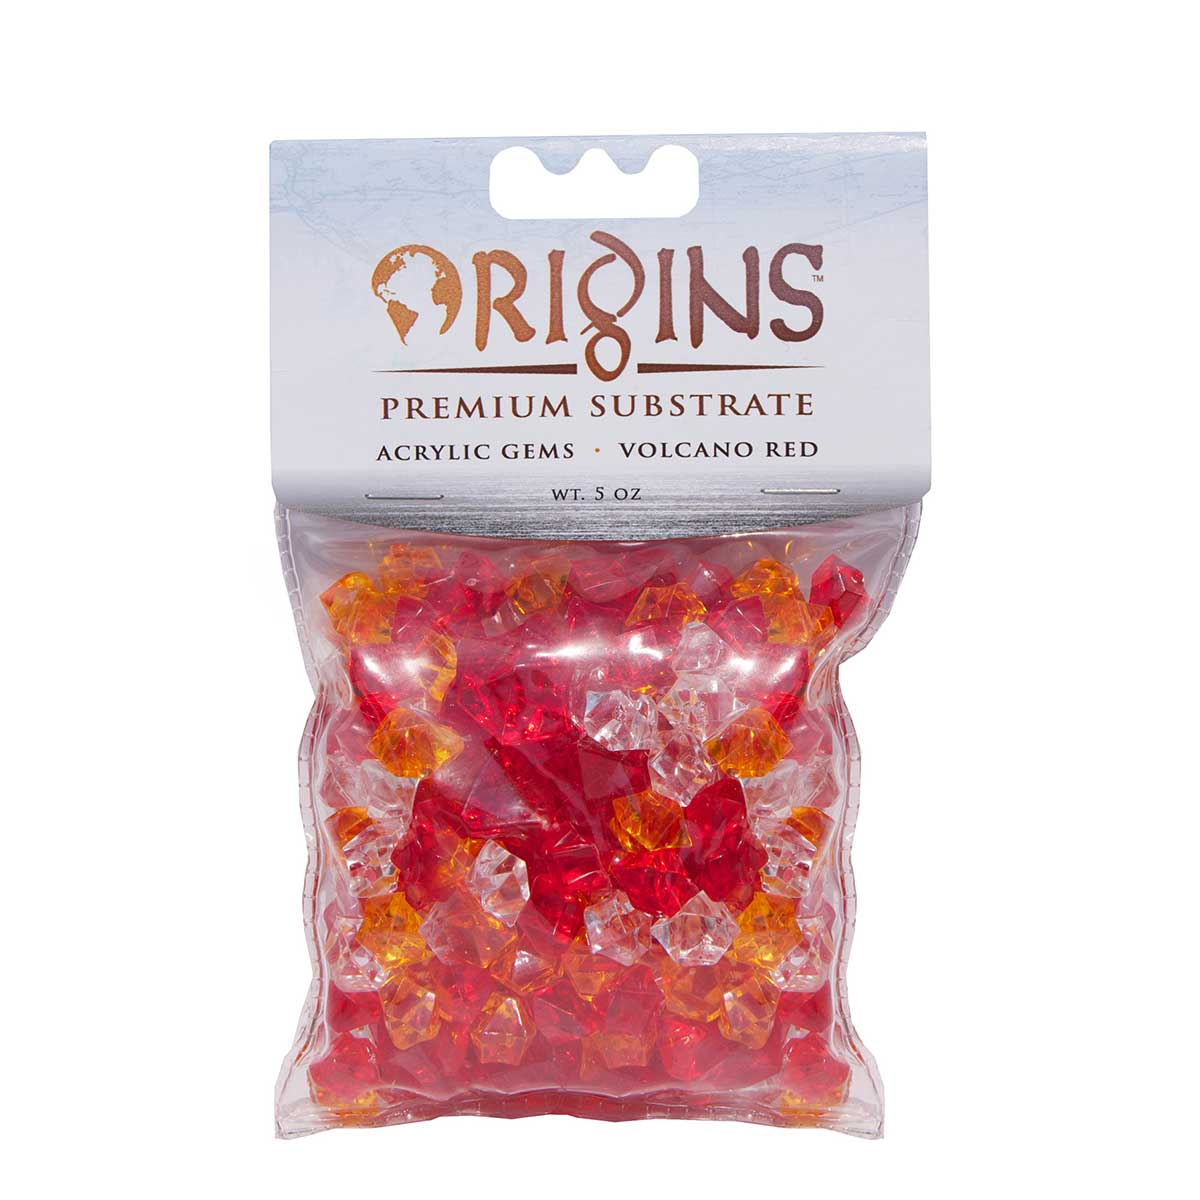 Acrylic Gems 5 ounce bag 62285412